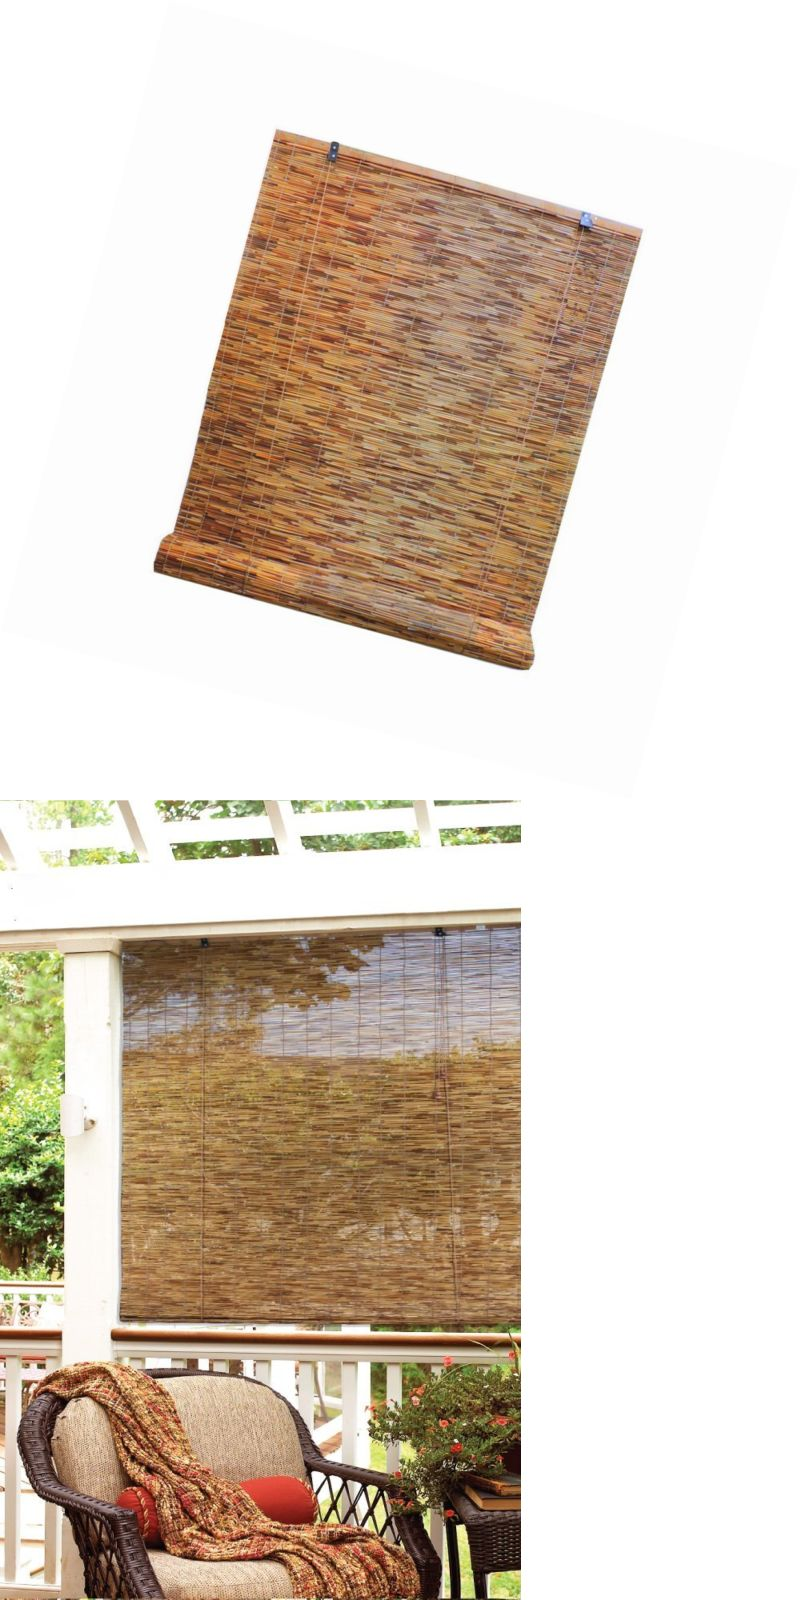 Blinds and shades bamboo reed blinds indoor outdoor roll up